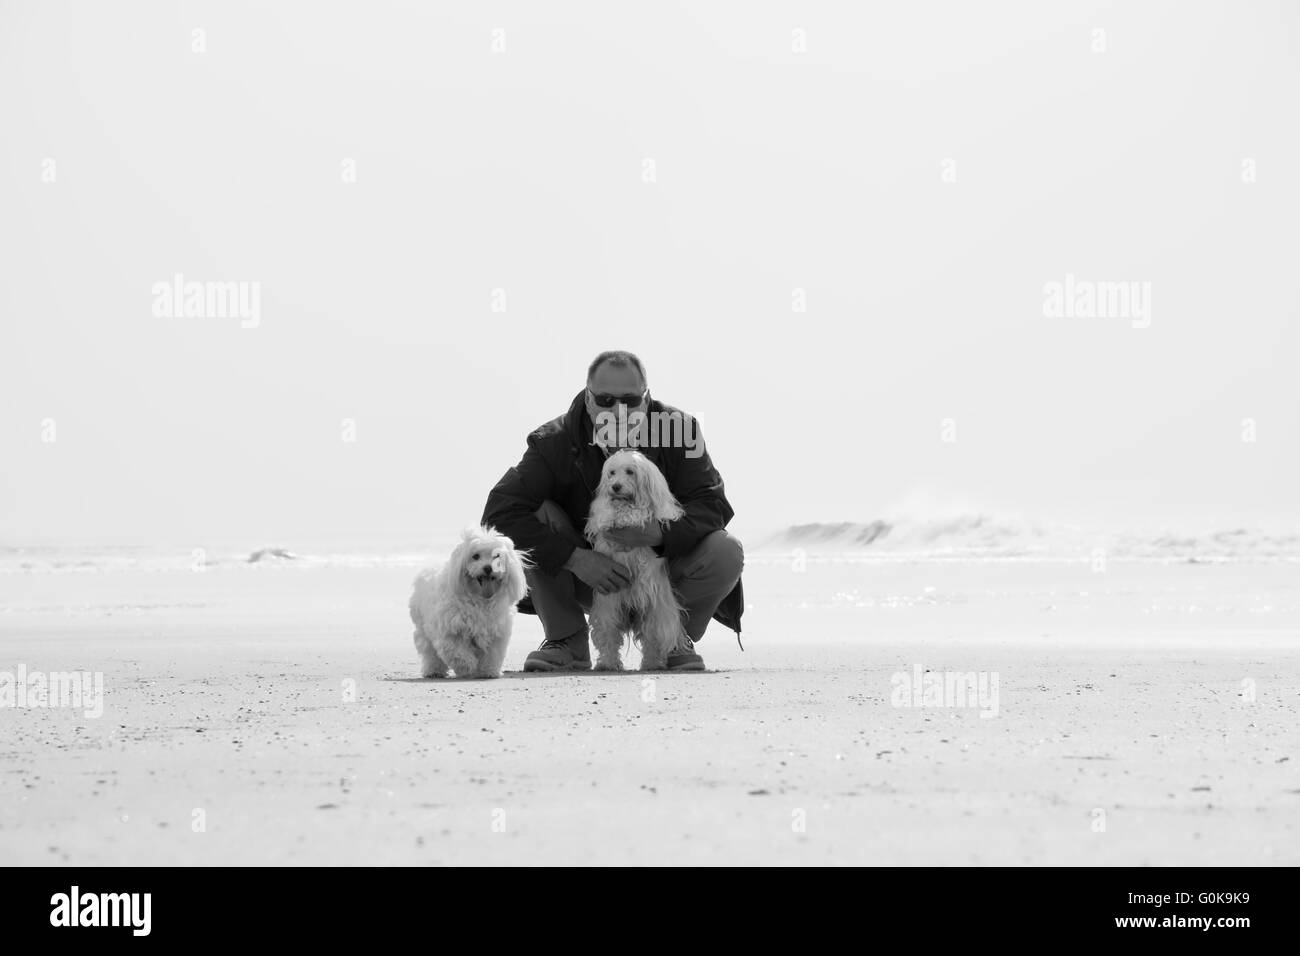 A man and his two dogs on the beach - Stock Image